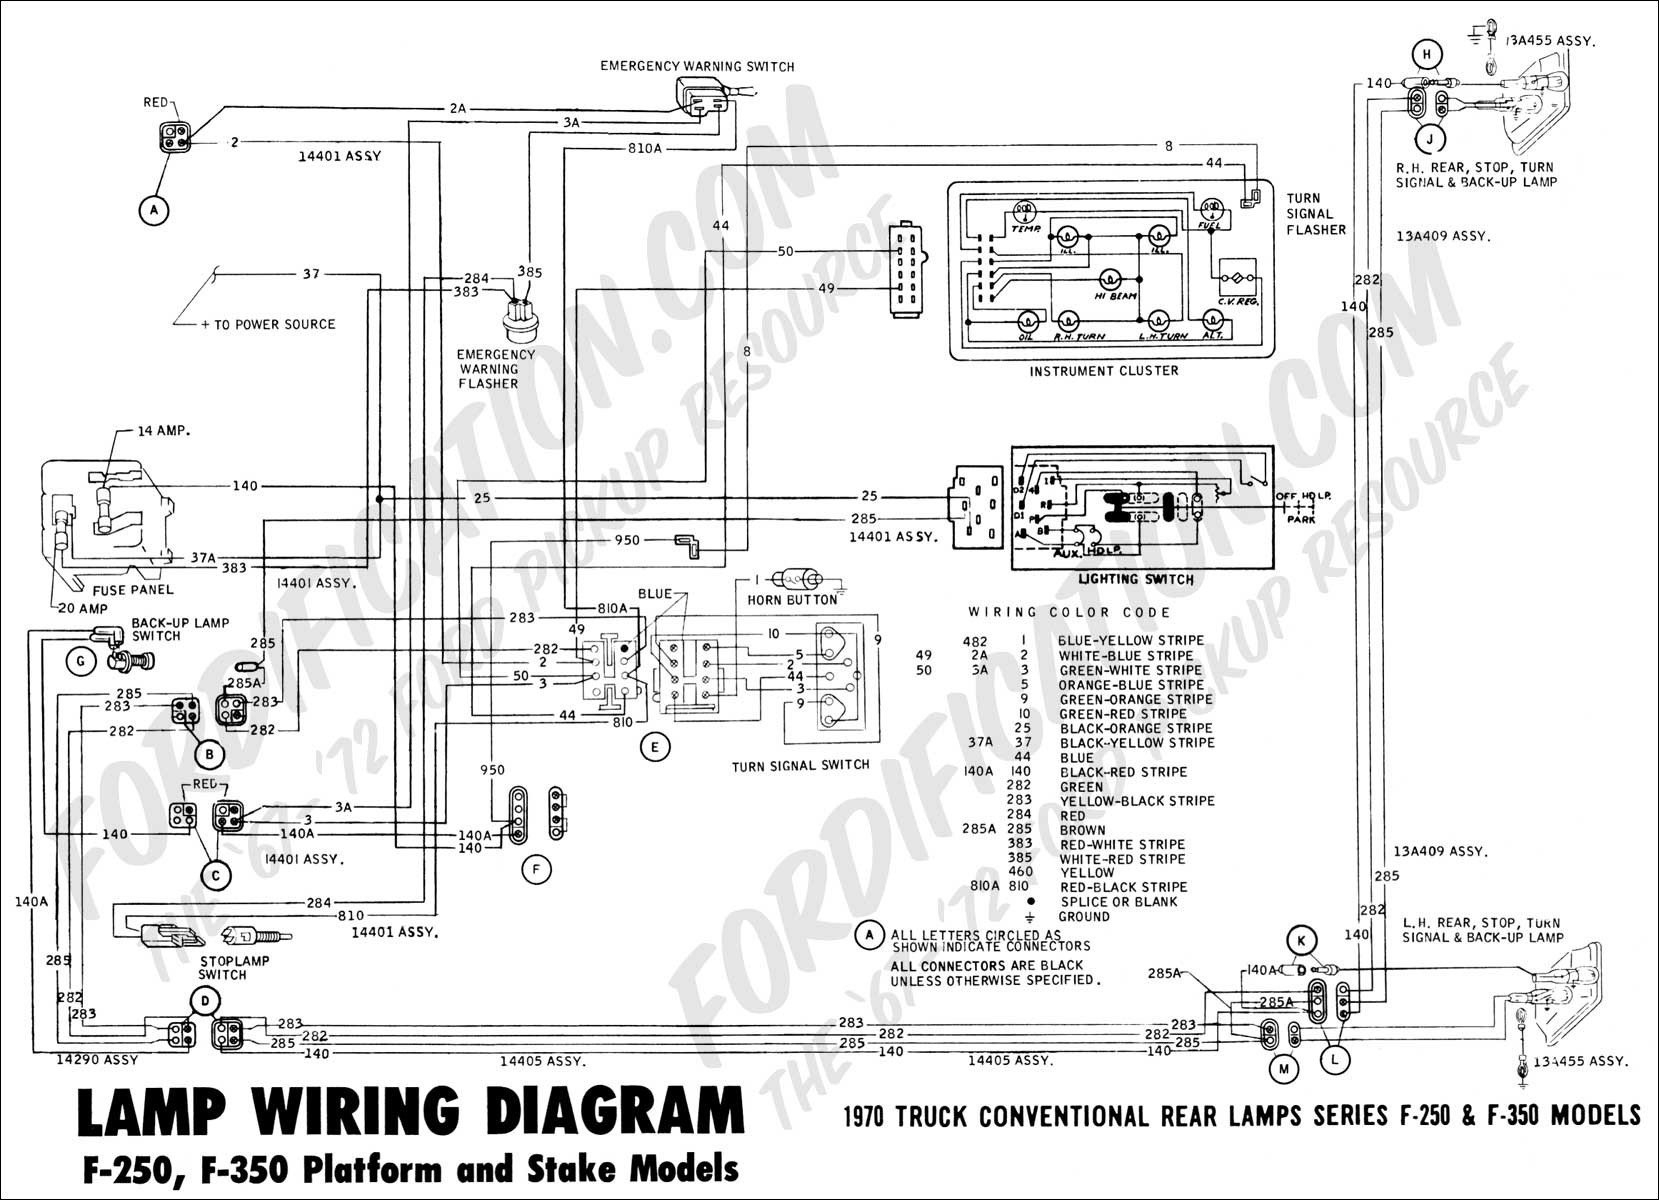 hight resolution of 2005 ford f 150 mirror wiring diagram wiring library rh 98 mac happen de 2002 ford